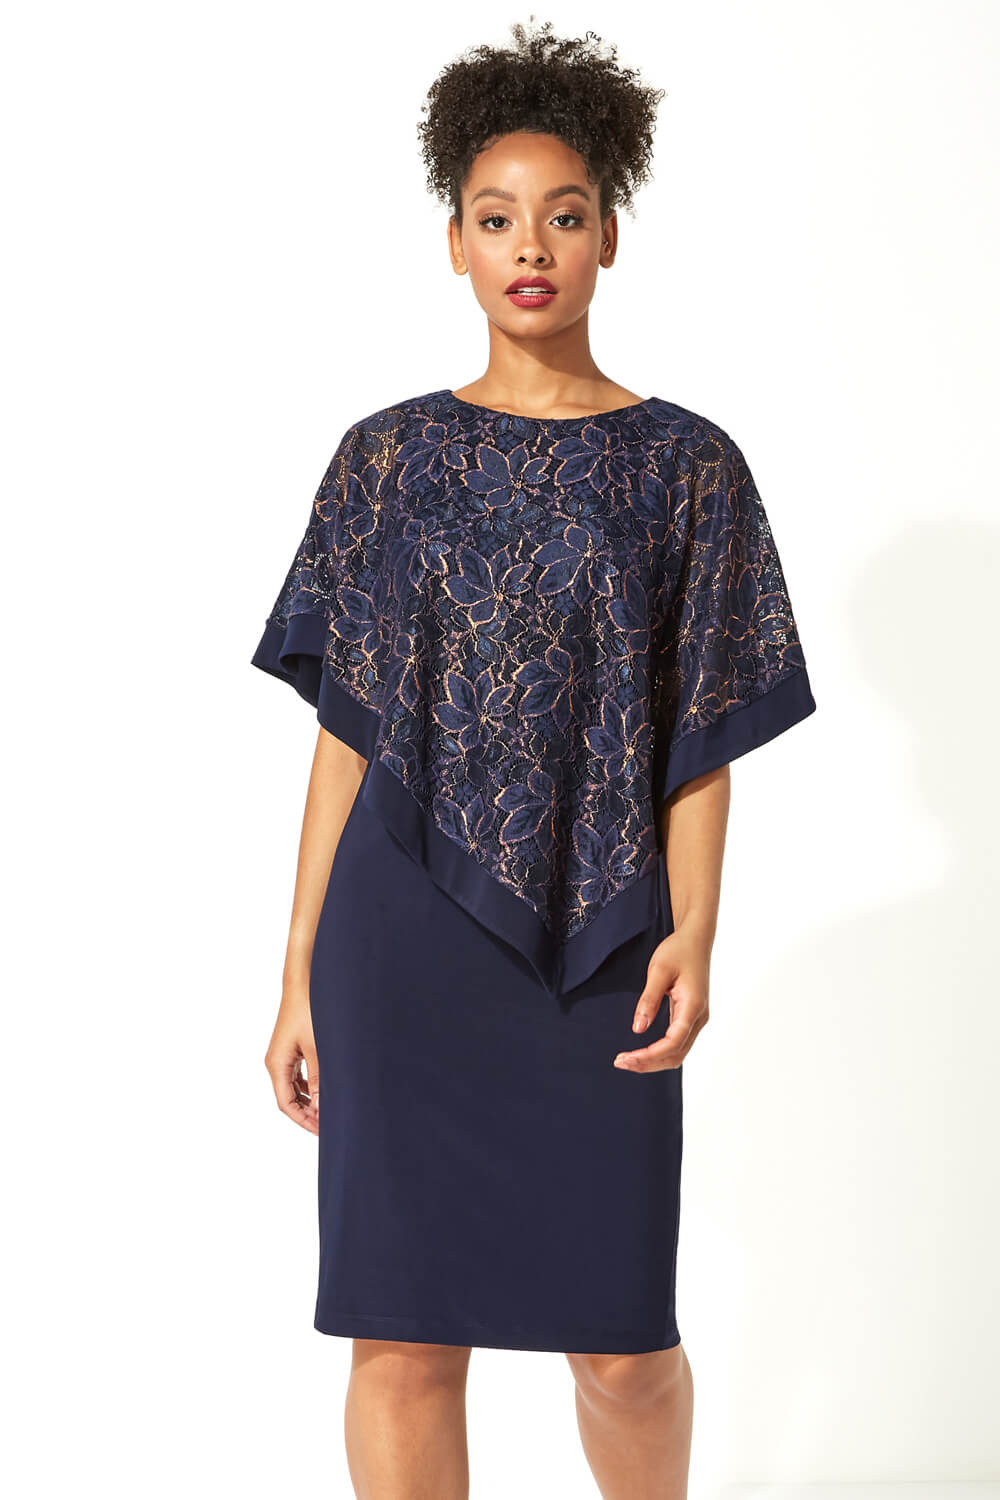 Roman-Originals-Women-039-s-Sequin-Lace-Boat-Neck-Overlay-Knee-Length-Dress thumbnail 24